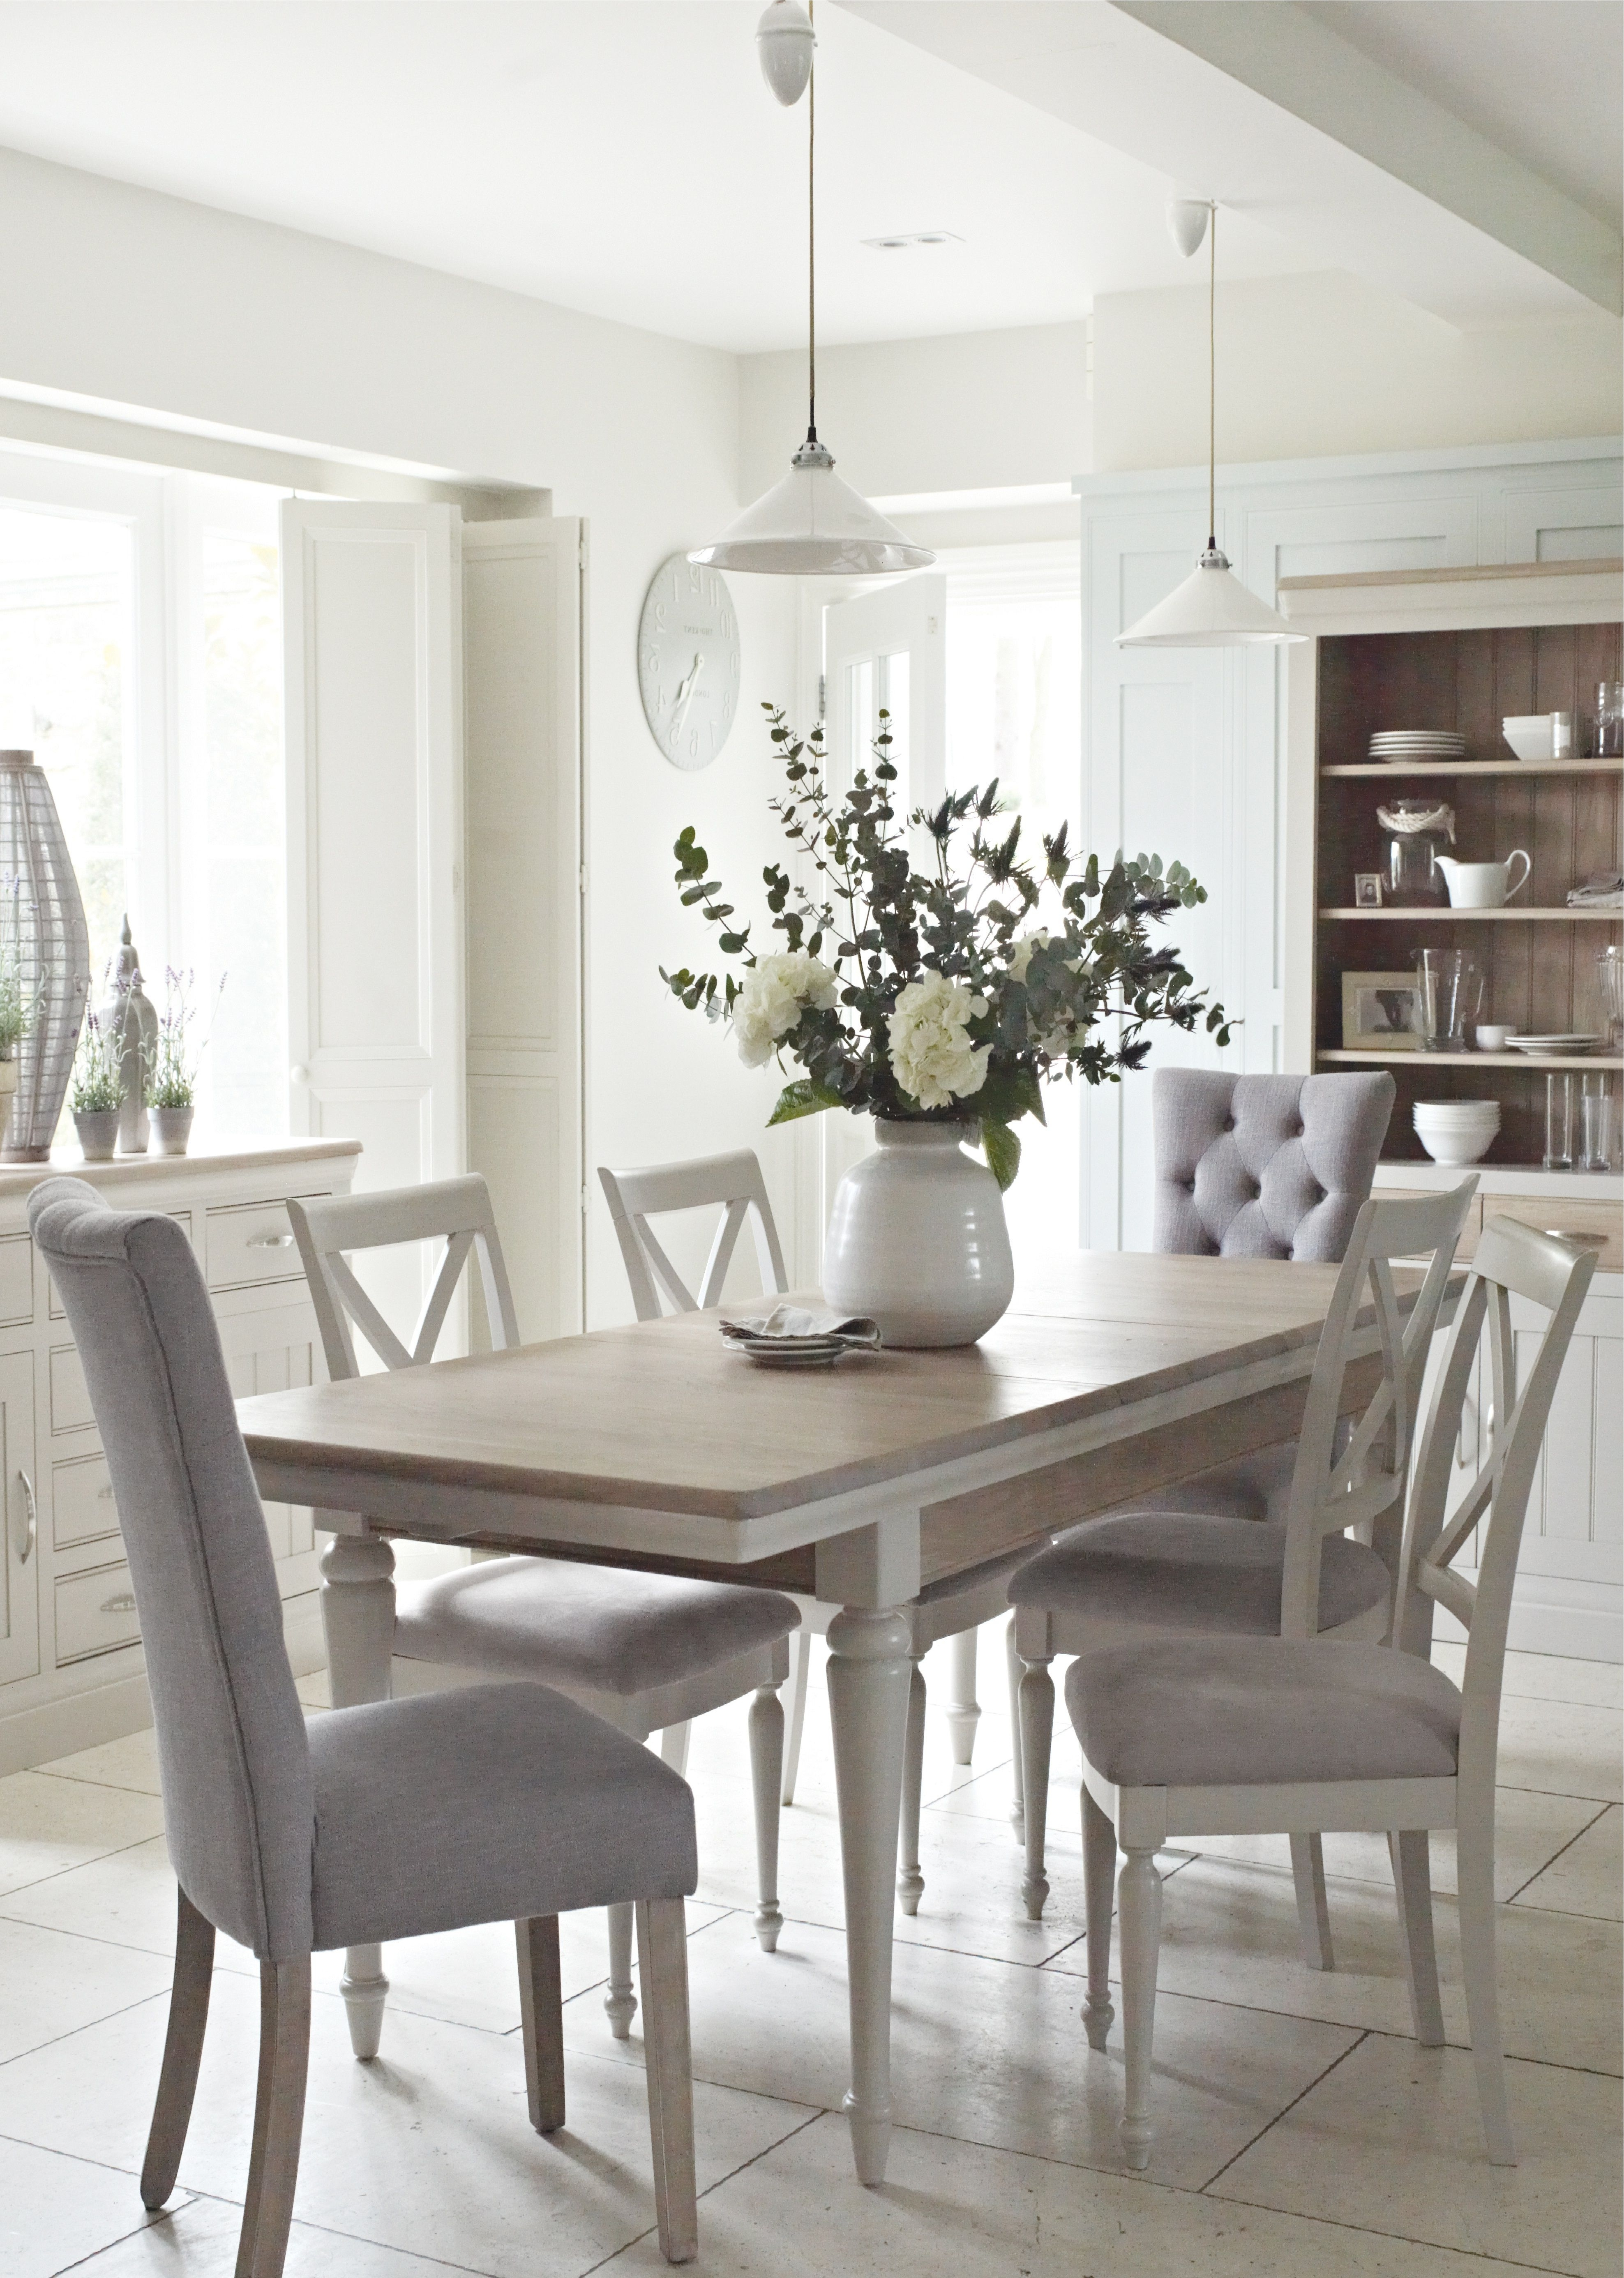 Most Recent Lassen 5 Piece Round Dining Sets Regarding The Classic Bambury Dining Range Just Oozes Country Chic (View 16 of 25)